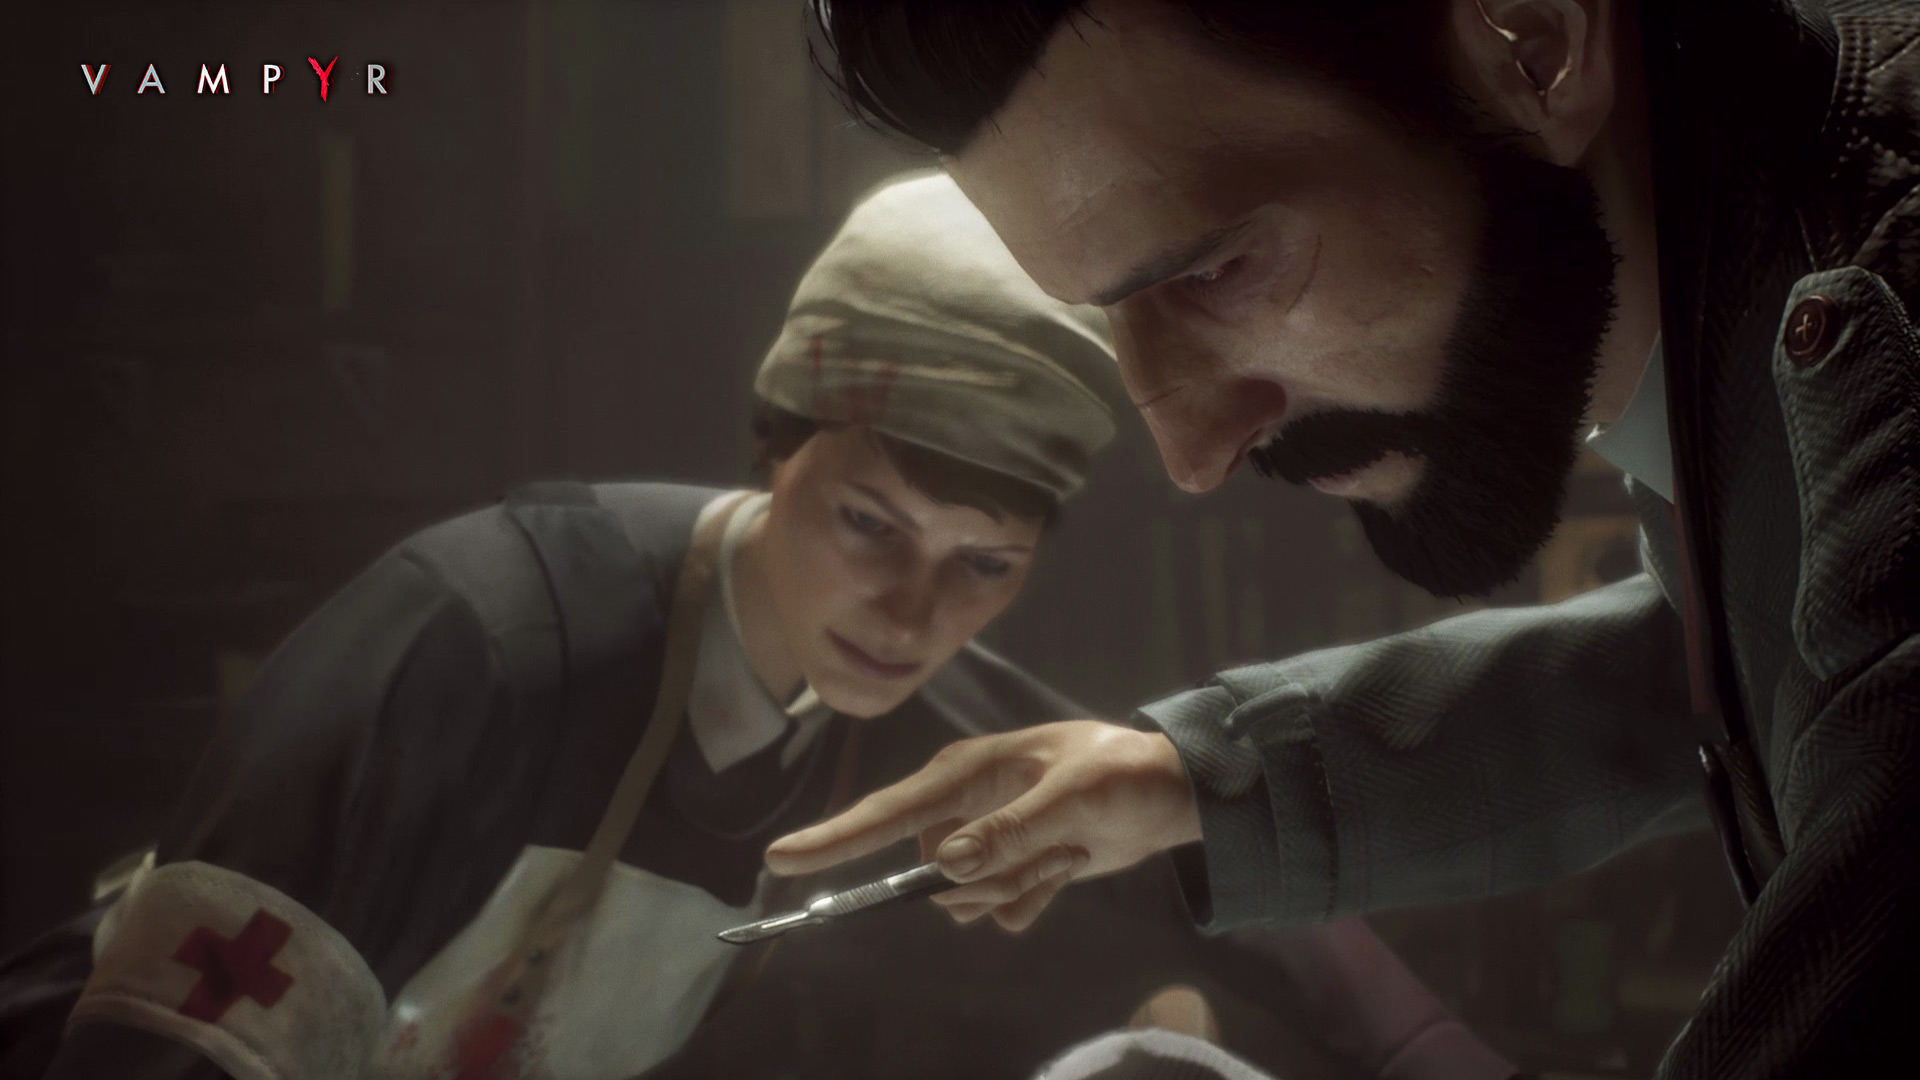 Vampyr review - doctor